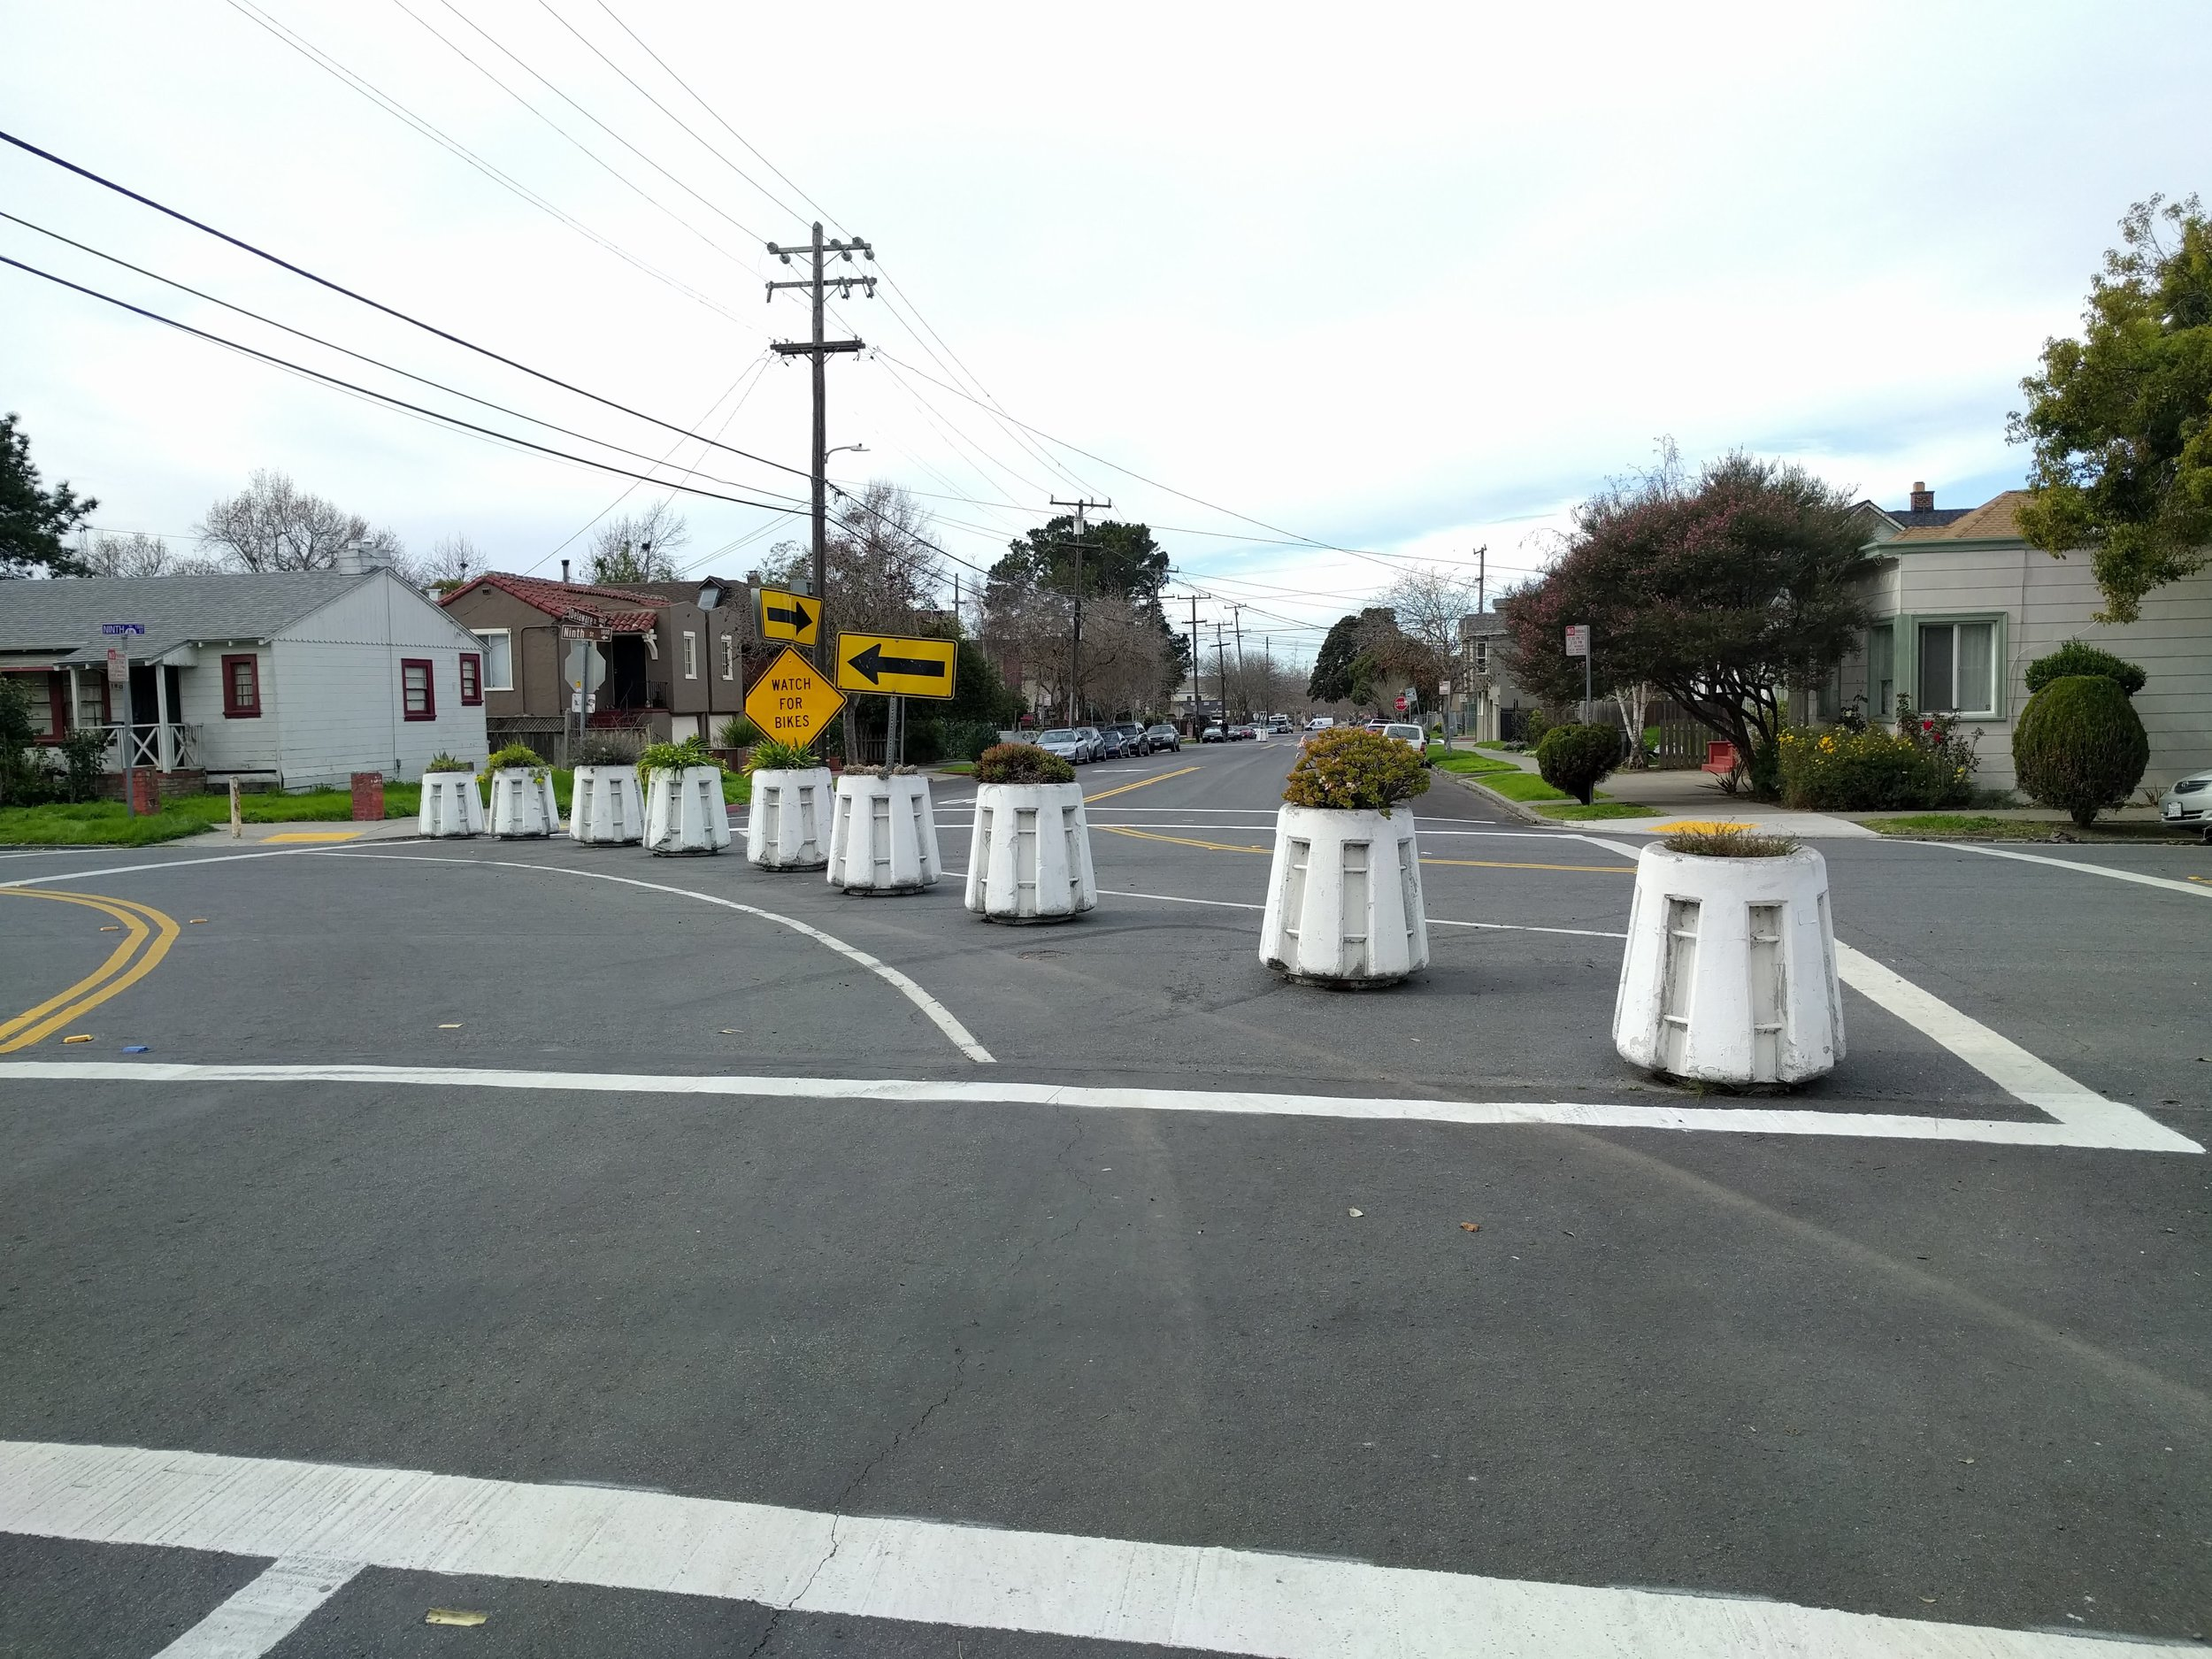 Here pictured:  the intersection of Delaware Street and 9th Street in West Berkeley. Cyclists can turn right onto 9th Street, a Bicycle Boulevard. The controversial traffic-calming project was initiated by the City of Berkeley in 1975 in order to keep cars out of residential neighborhoods.  Coupled with the Bicycle Boulevard Network, these barricades make bike commuting in Berkeley safe, efficient, and joyous.